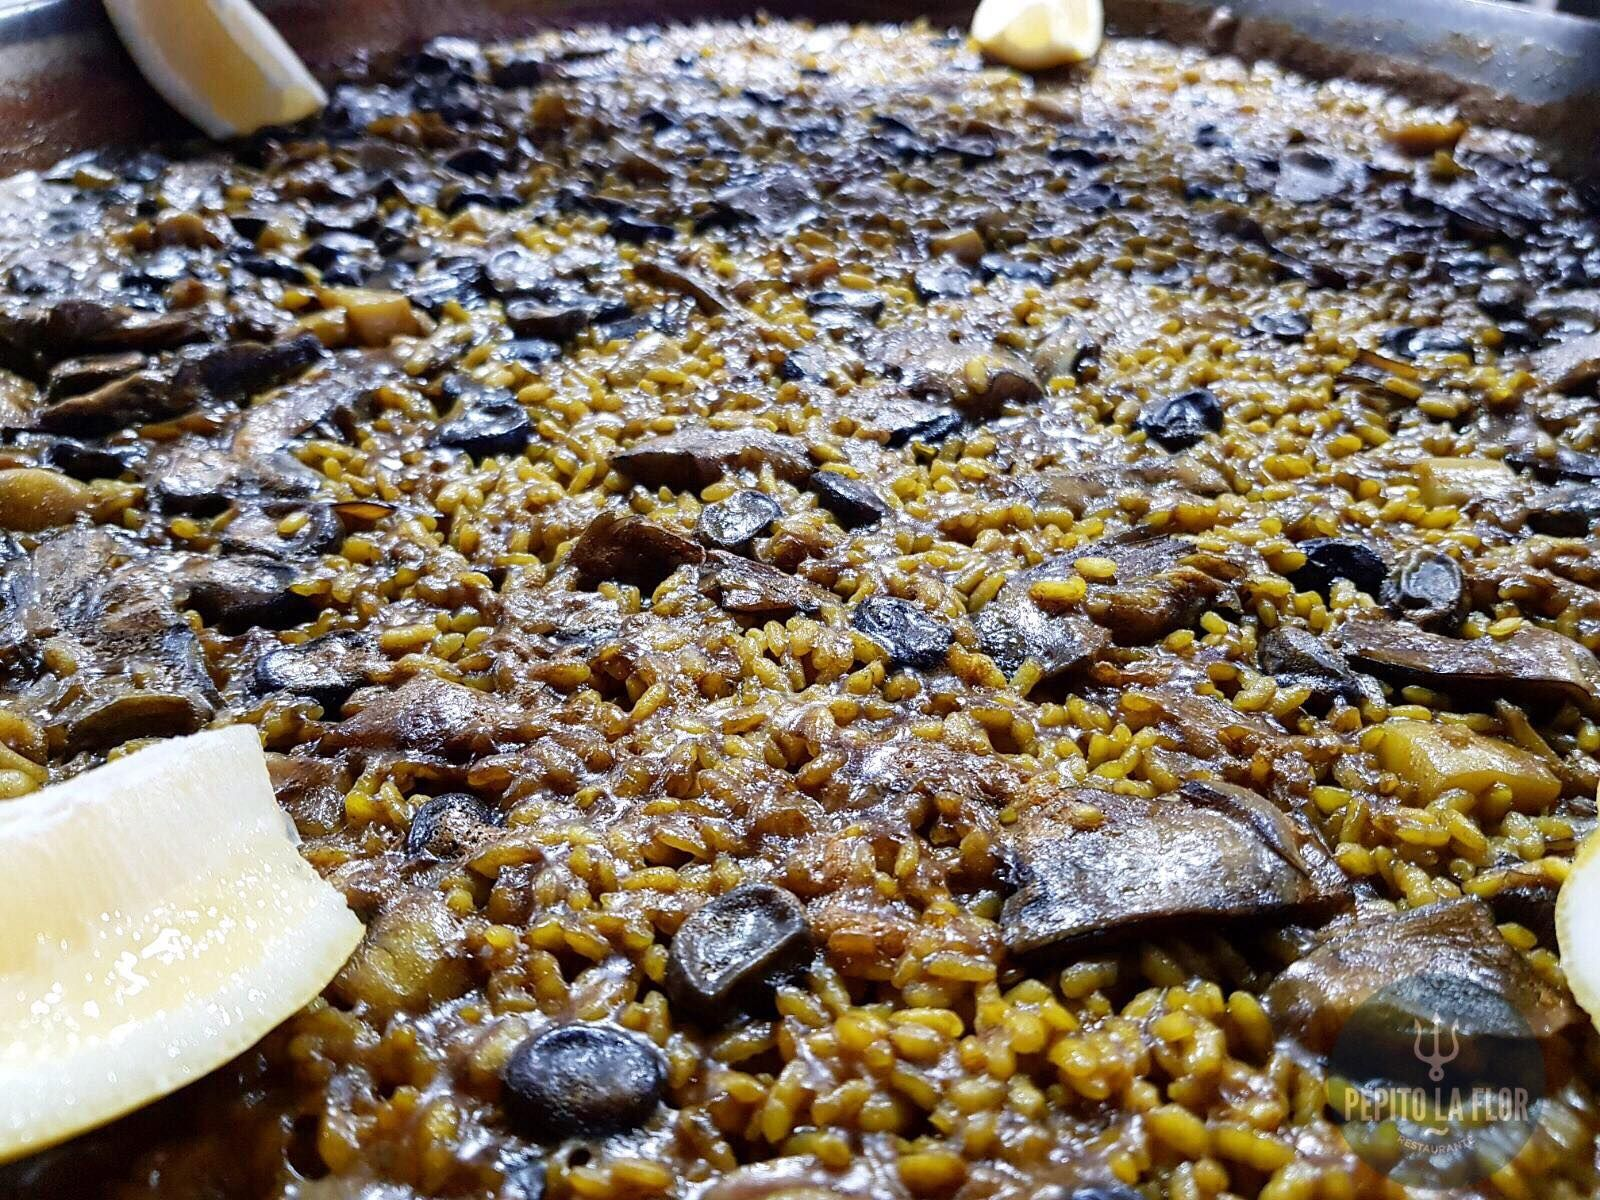 Arroces y paellas en Gandía